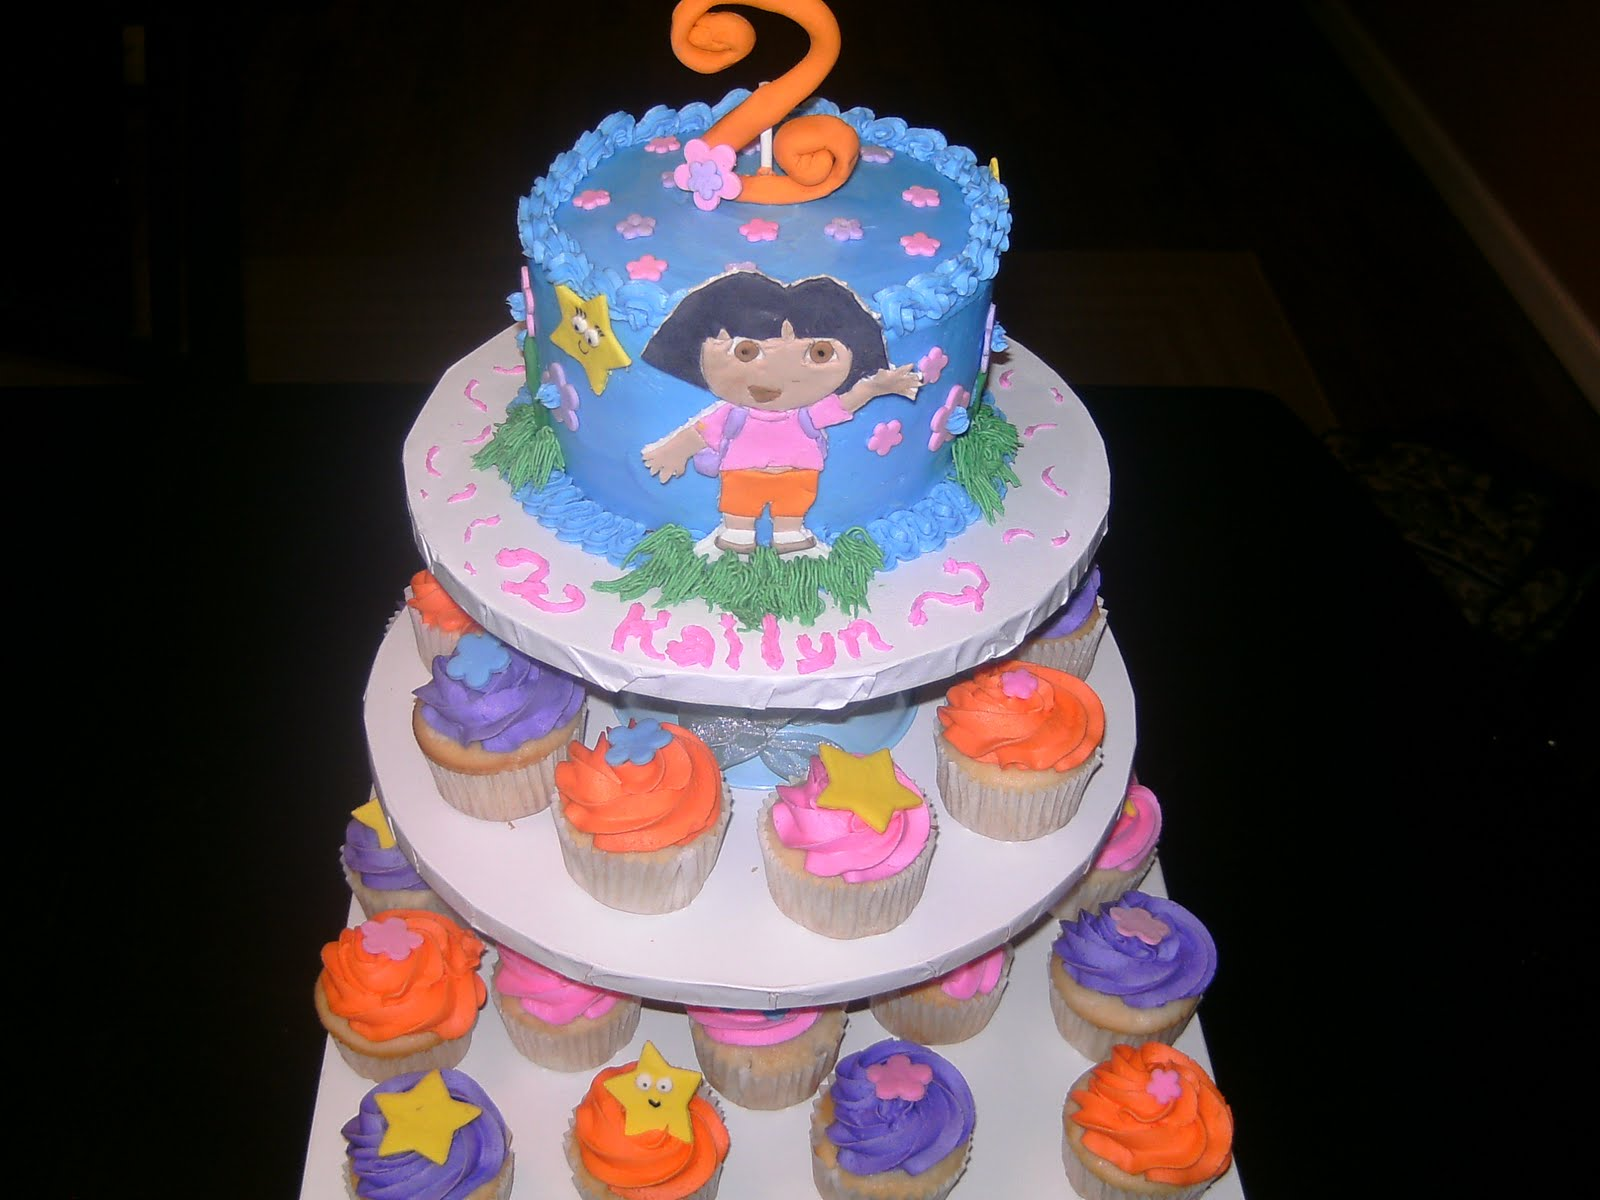 Dora Sheet Cakes images